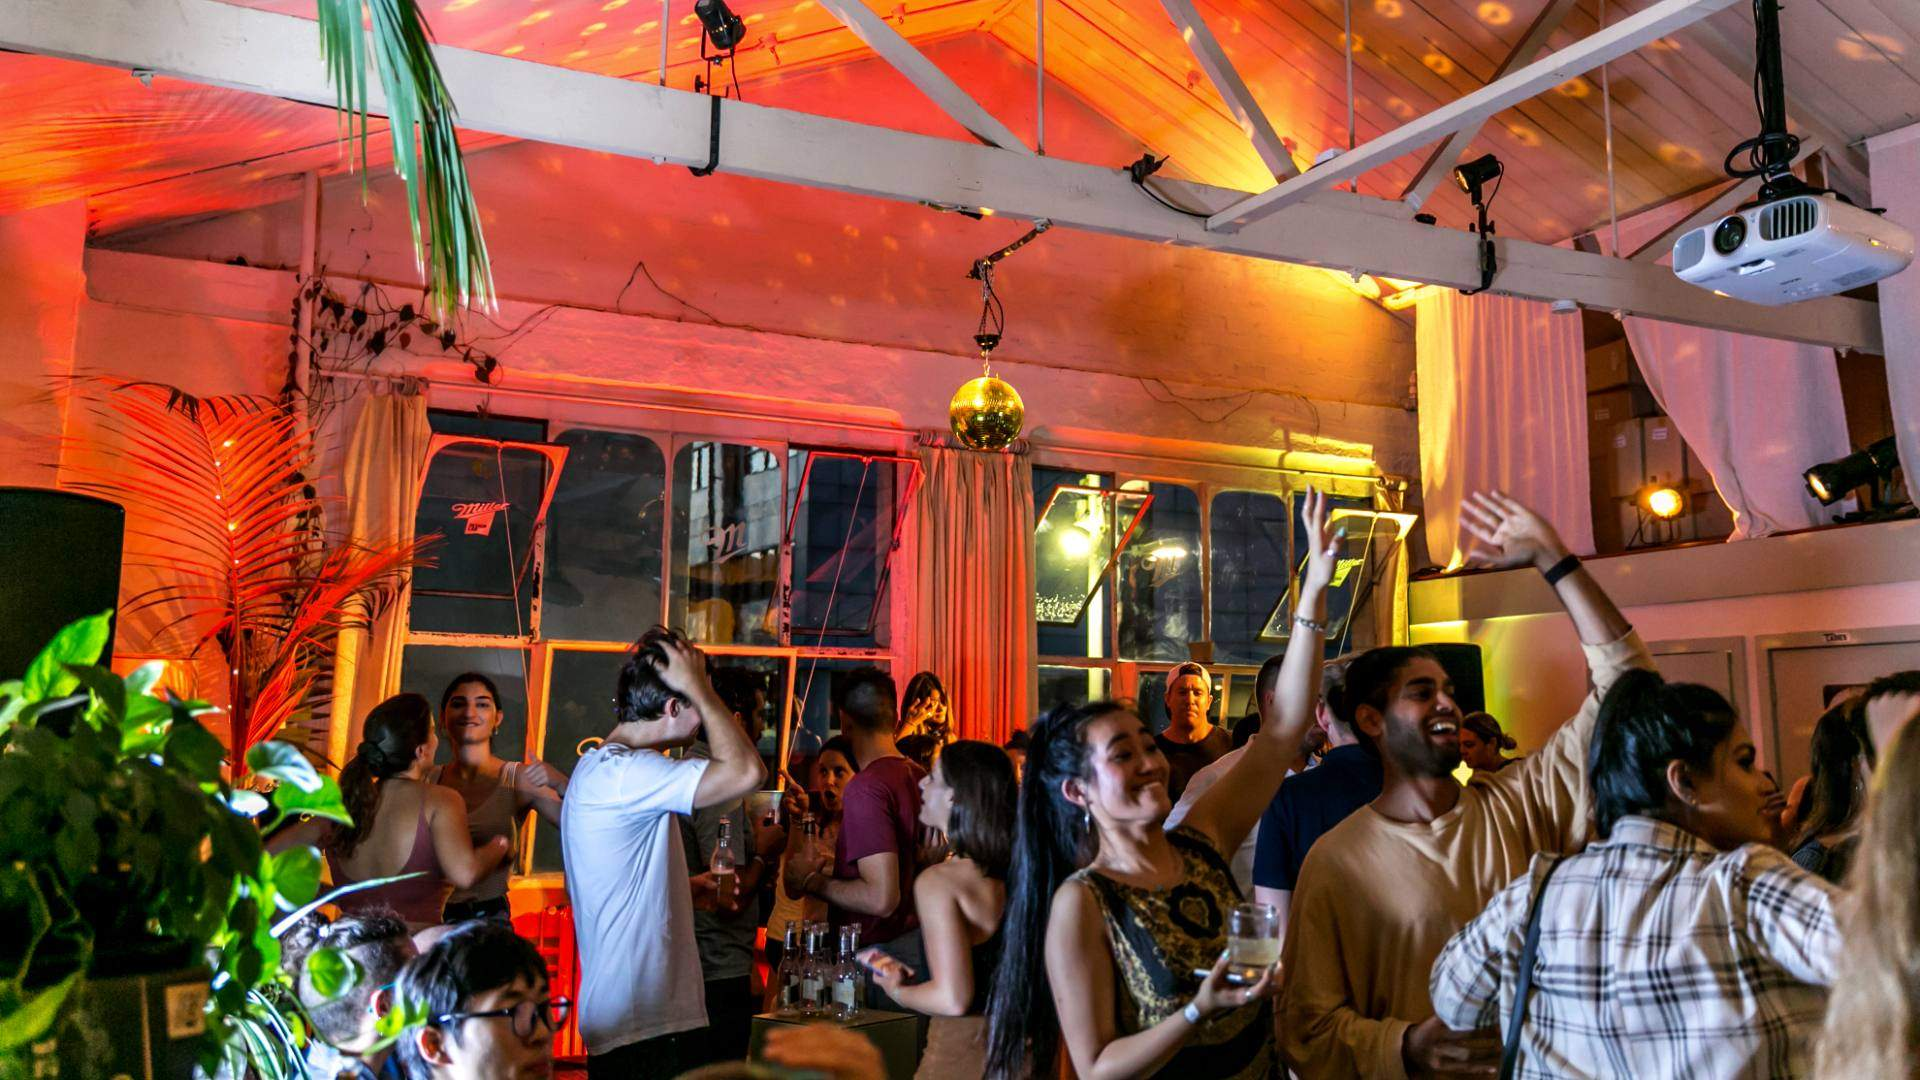 The NSW Government Is Scrapping At-Home Gathering Limits and Bringing Back Dance Floors